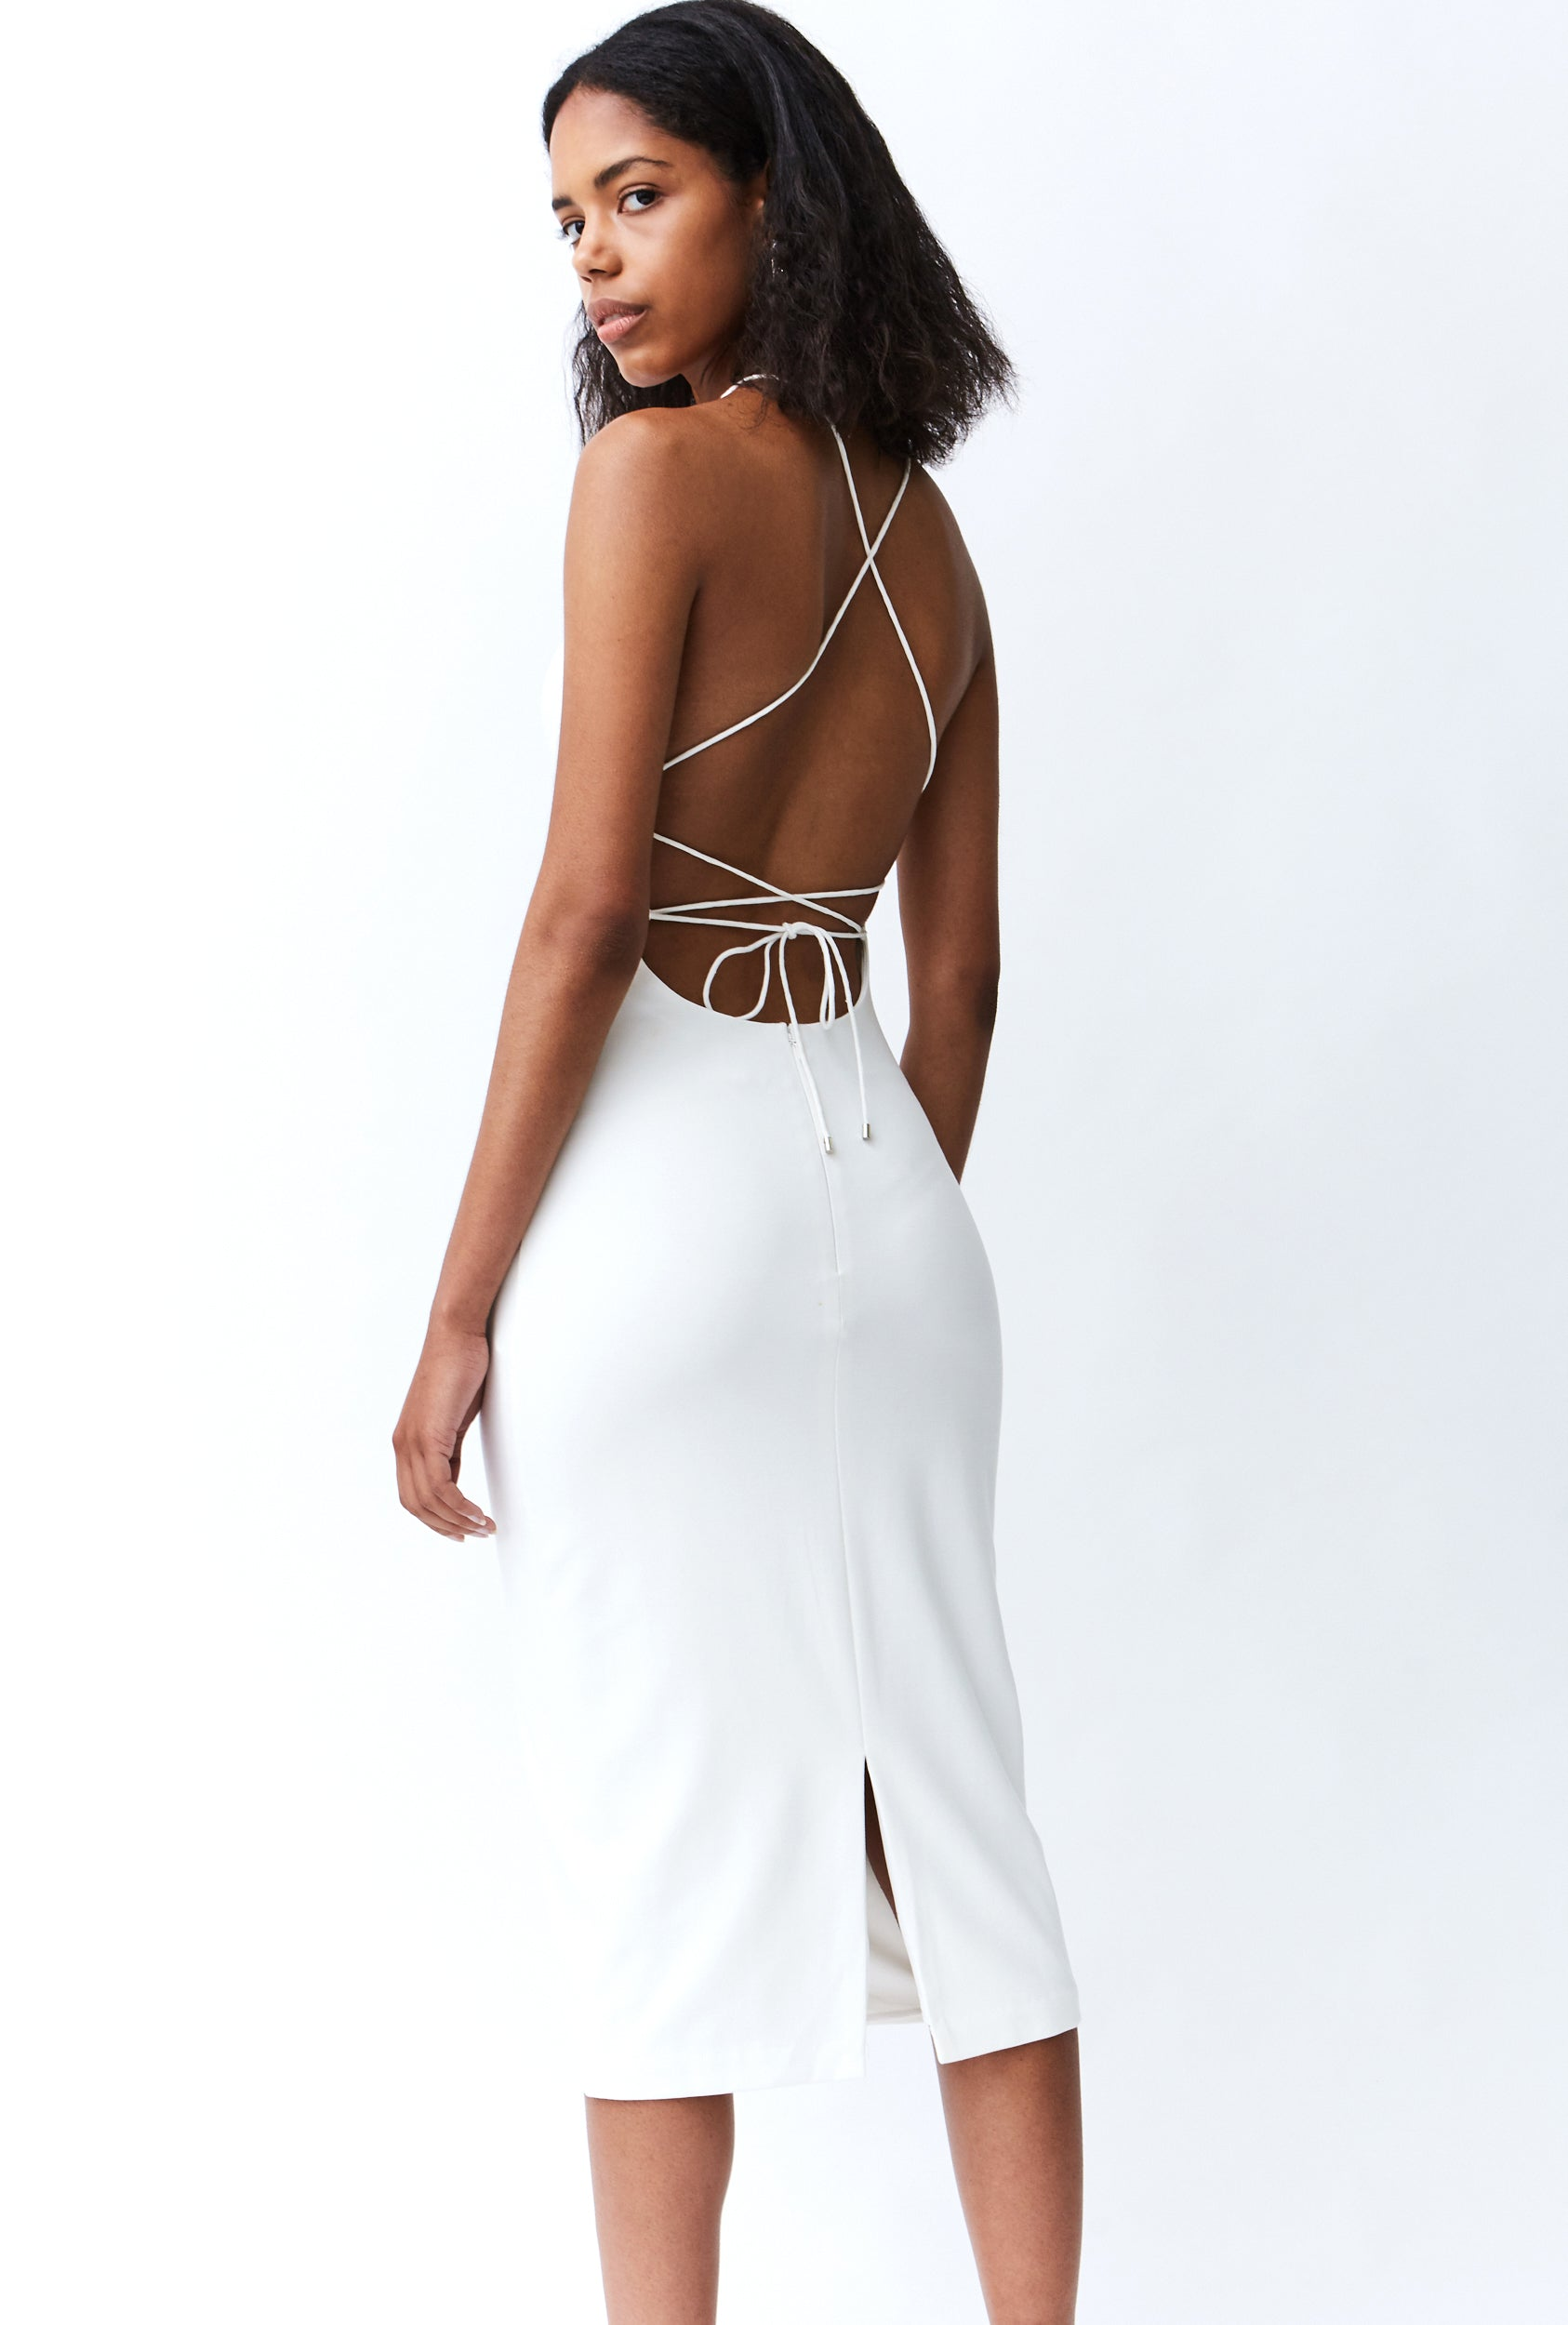 LACE UP MIDI DRESS | WHITE